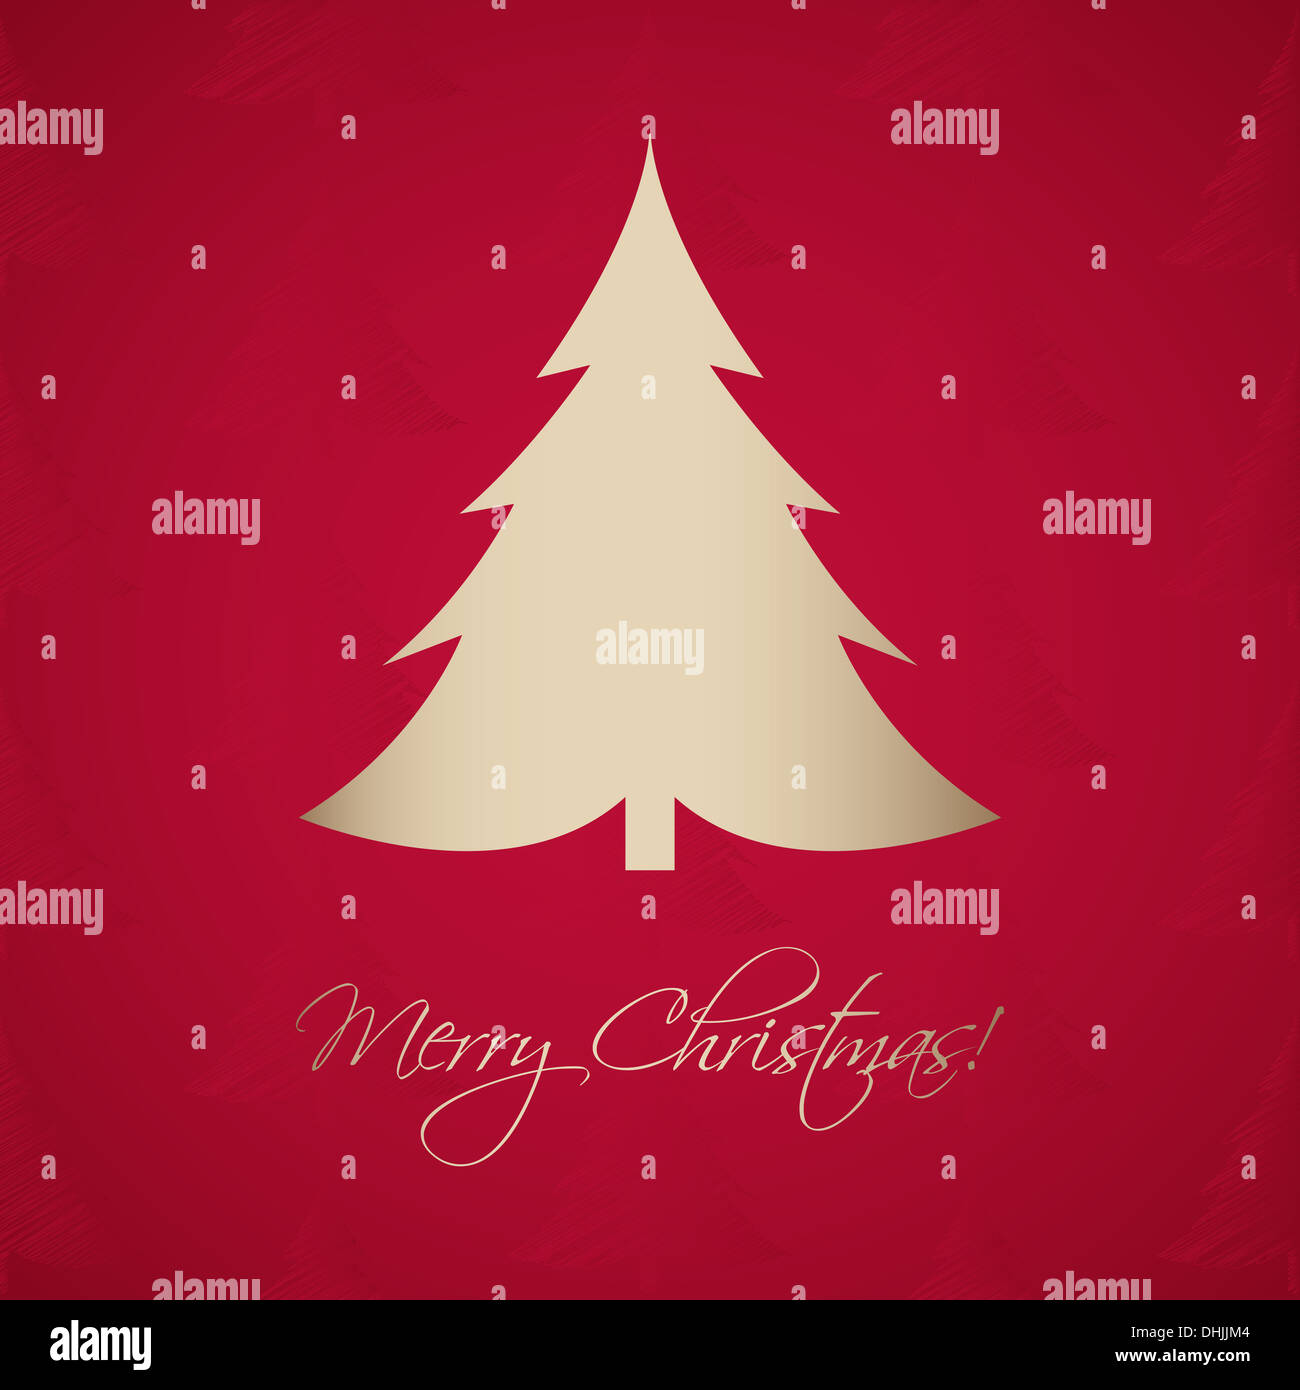 Christmas Greeting Card With A Special Christmas Tree Stock Photo